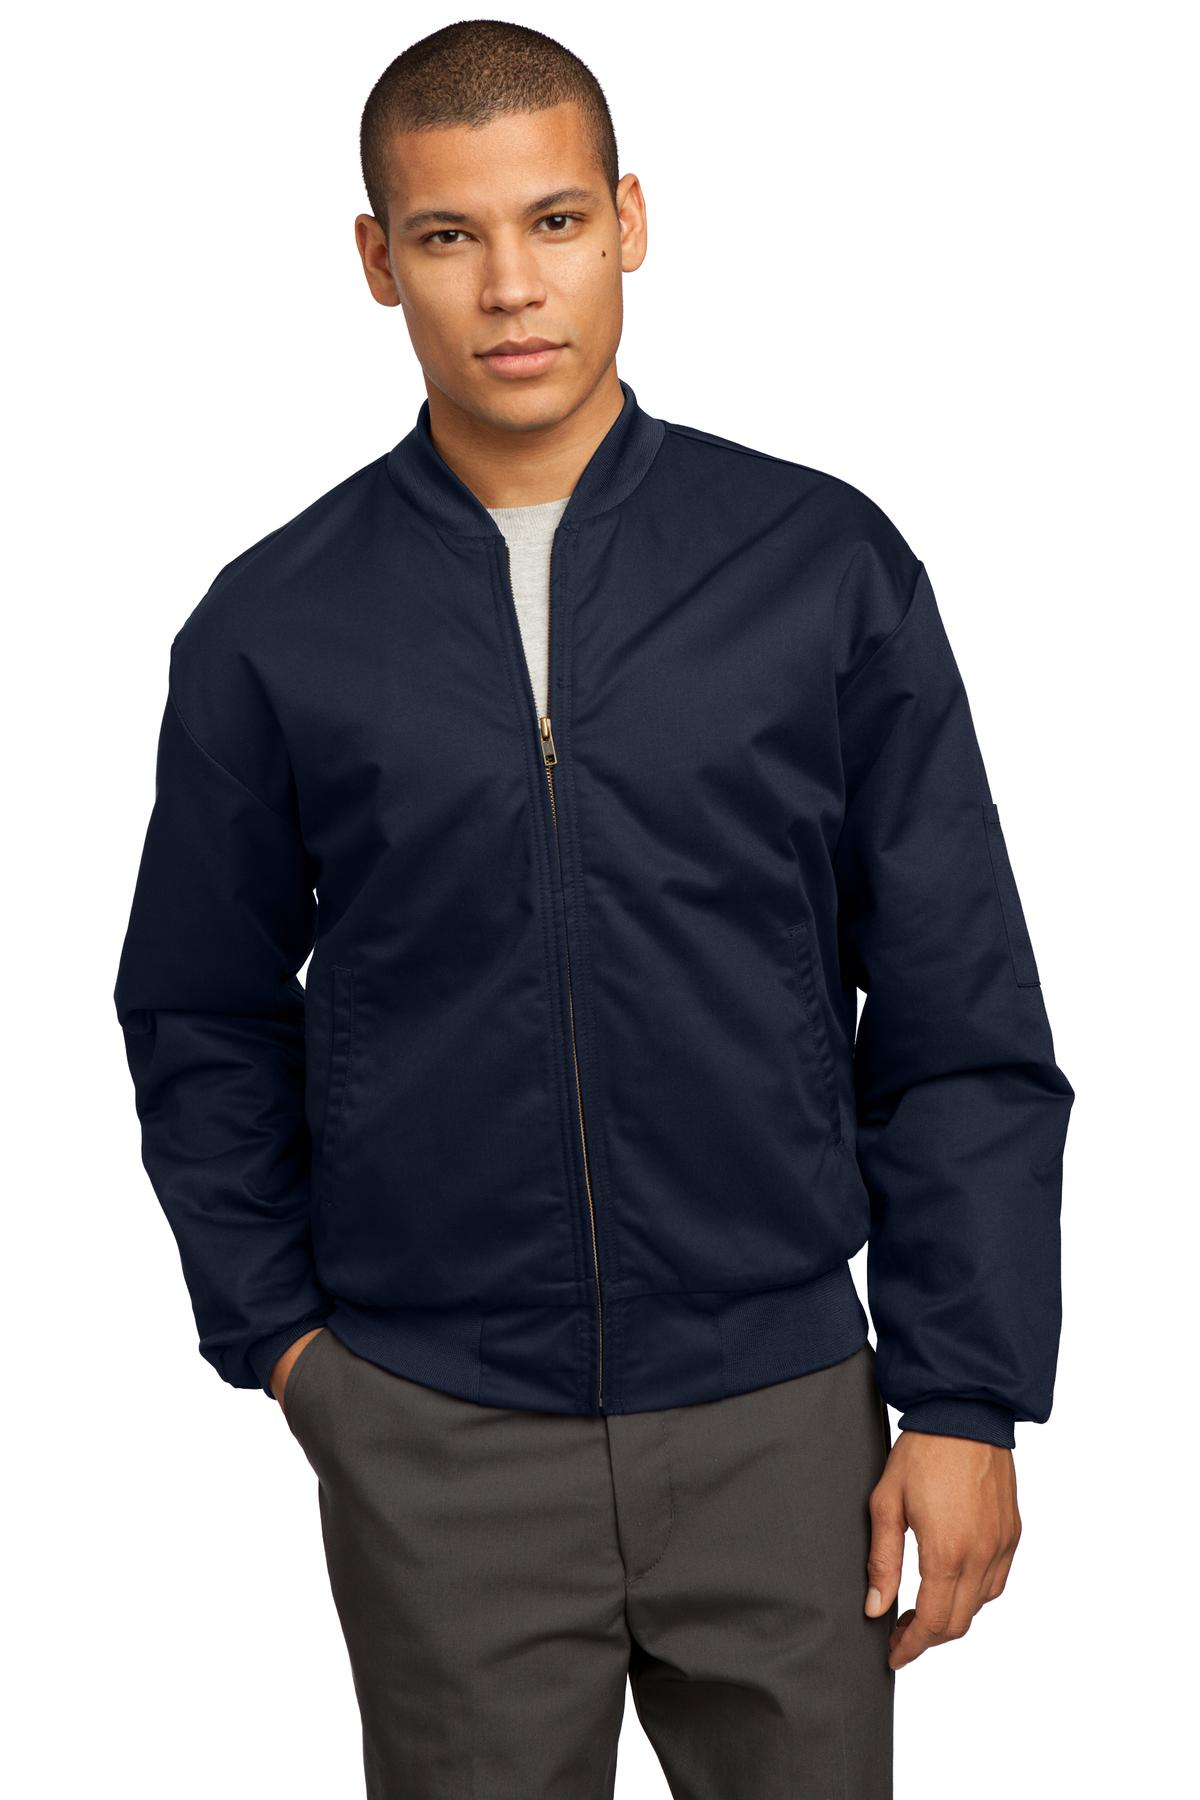 Red Kap ®  Team Style Jacket with Slash Pockets. CSJT38 - Navy